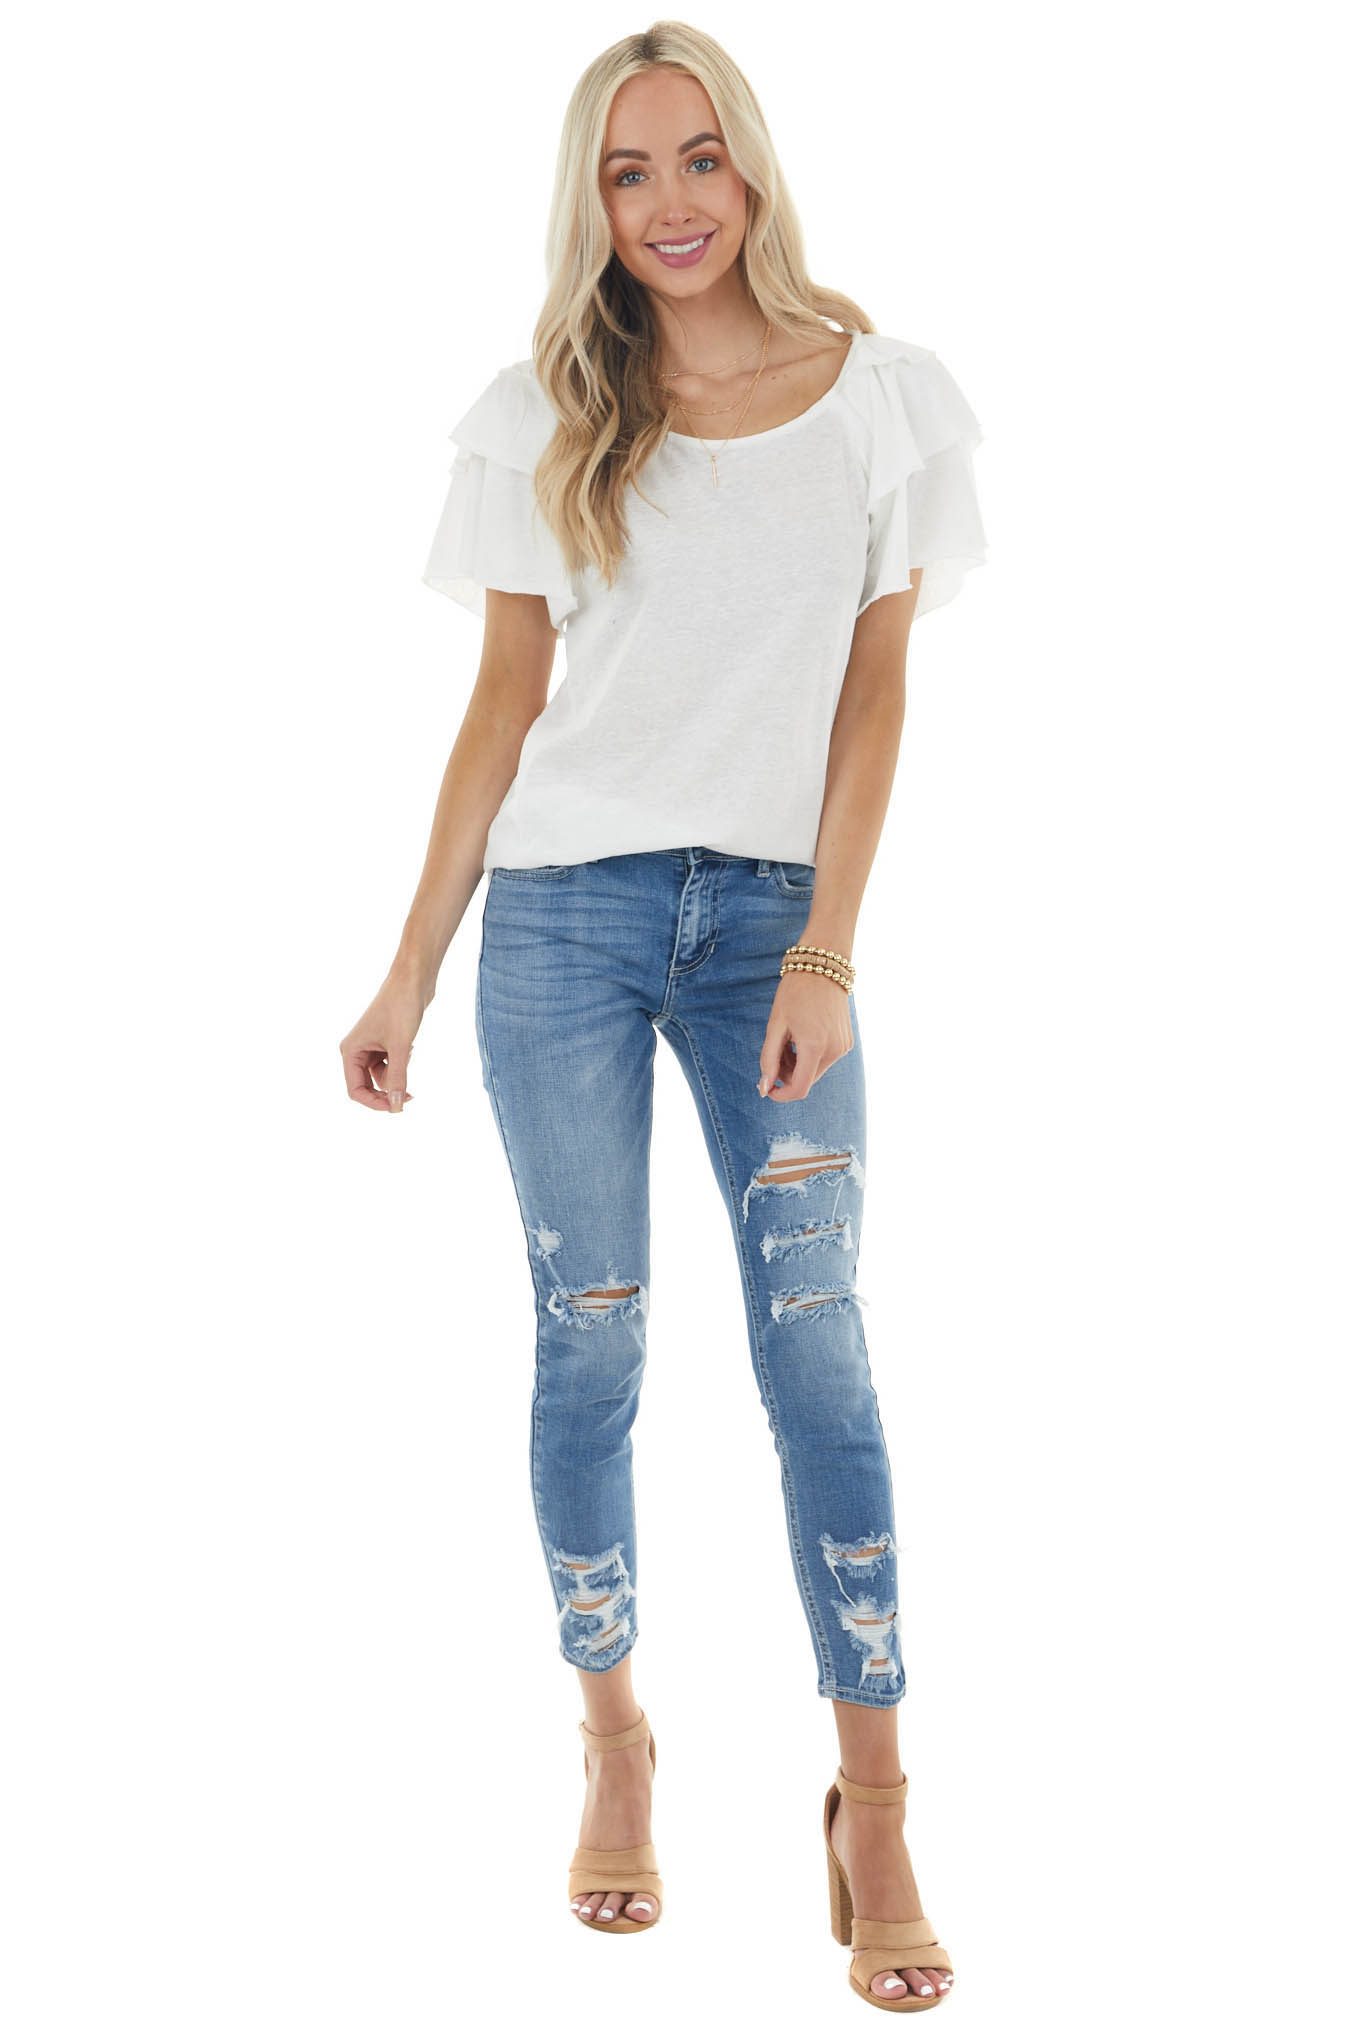 Off White Knit Top with Short Layered Ruffle Sleeves